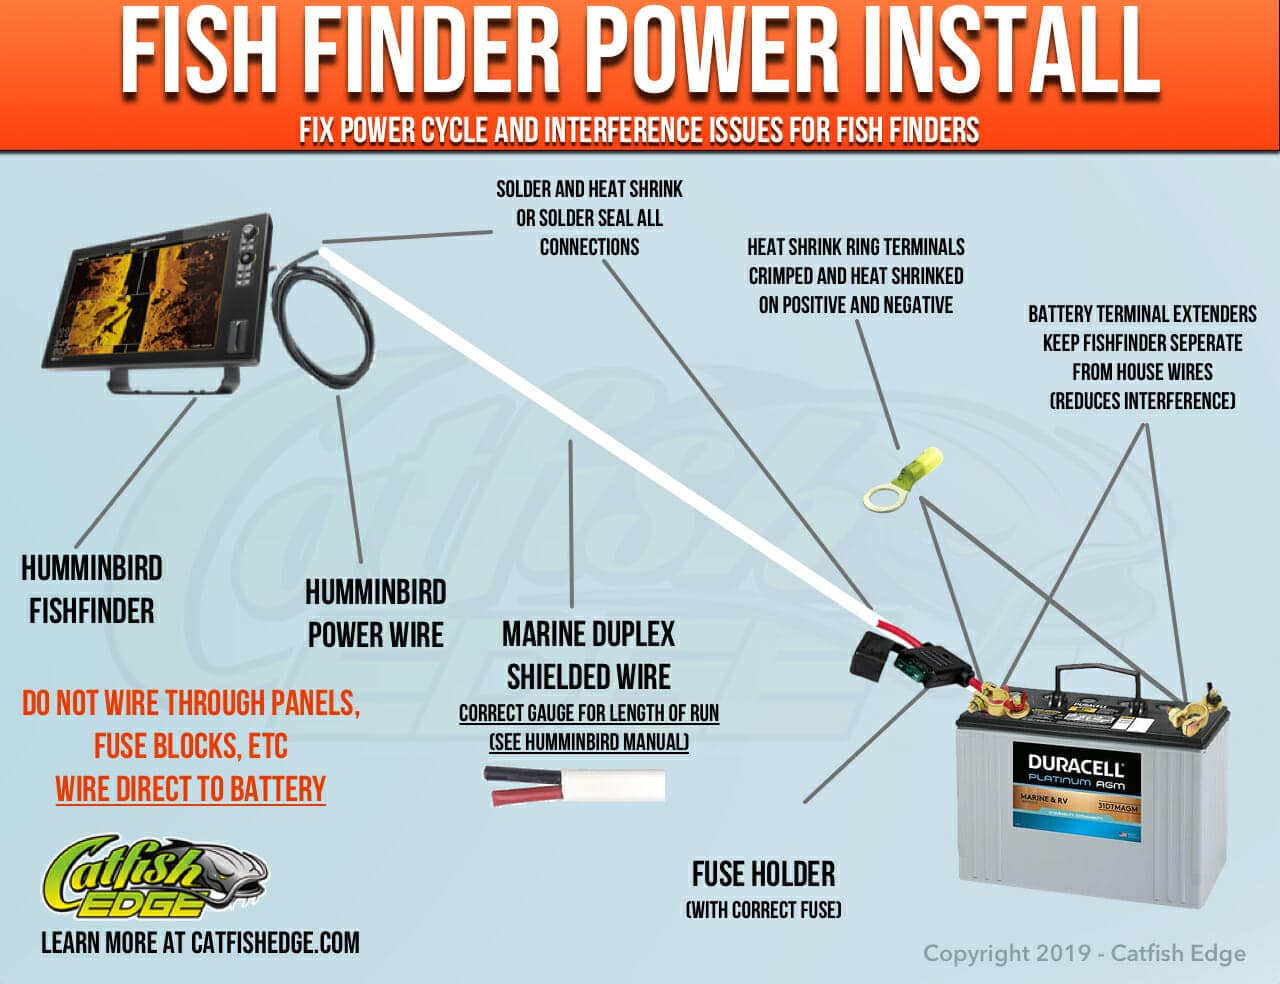 Fish Finder Power